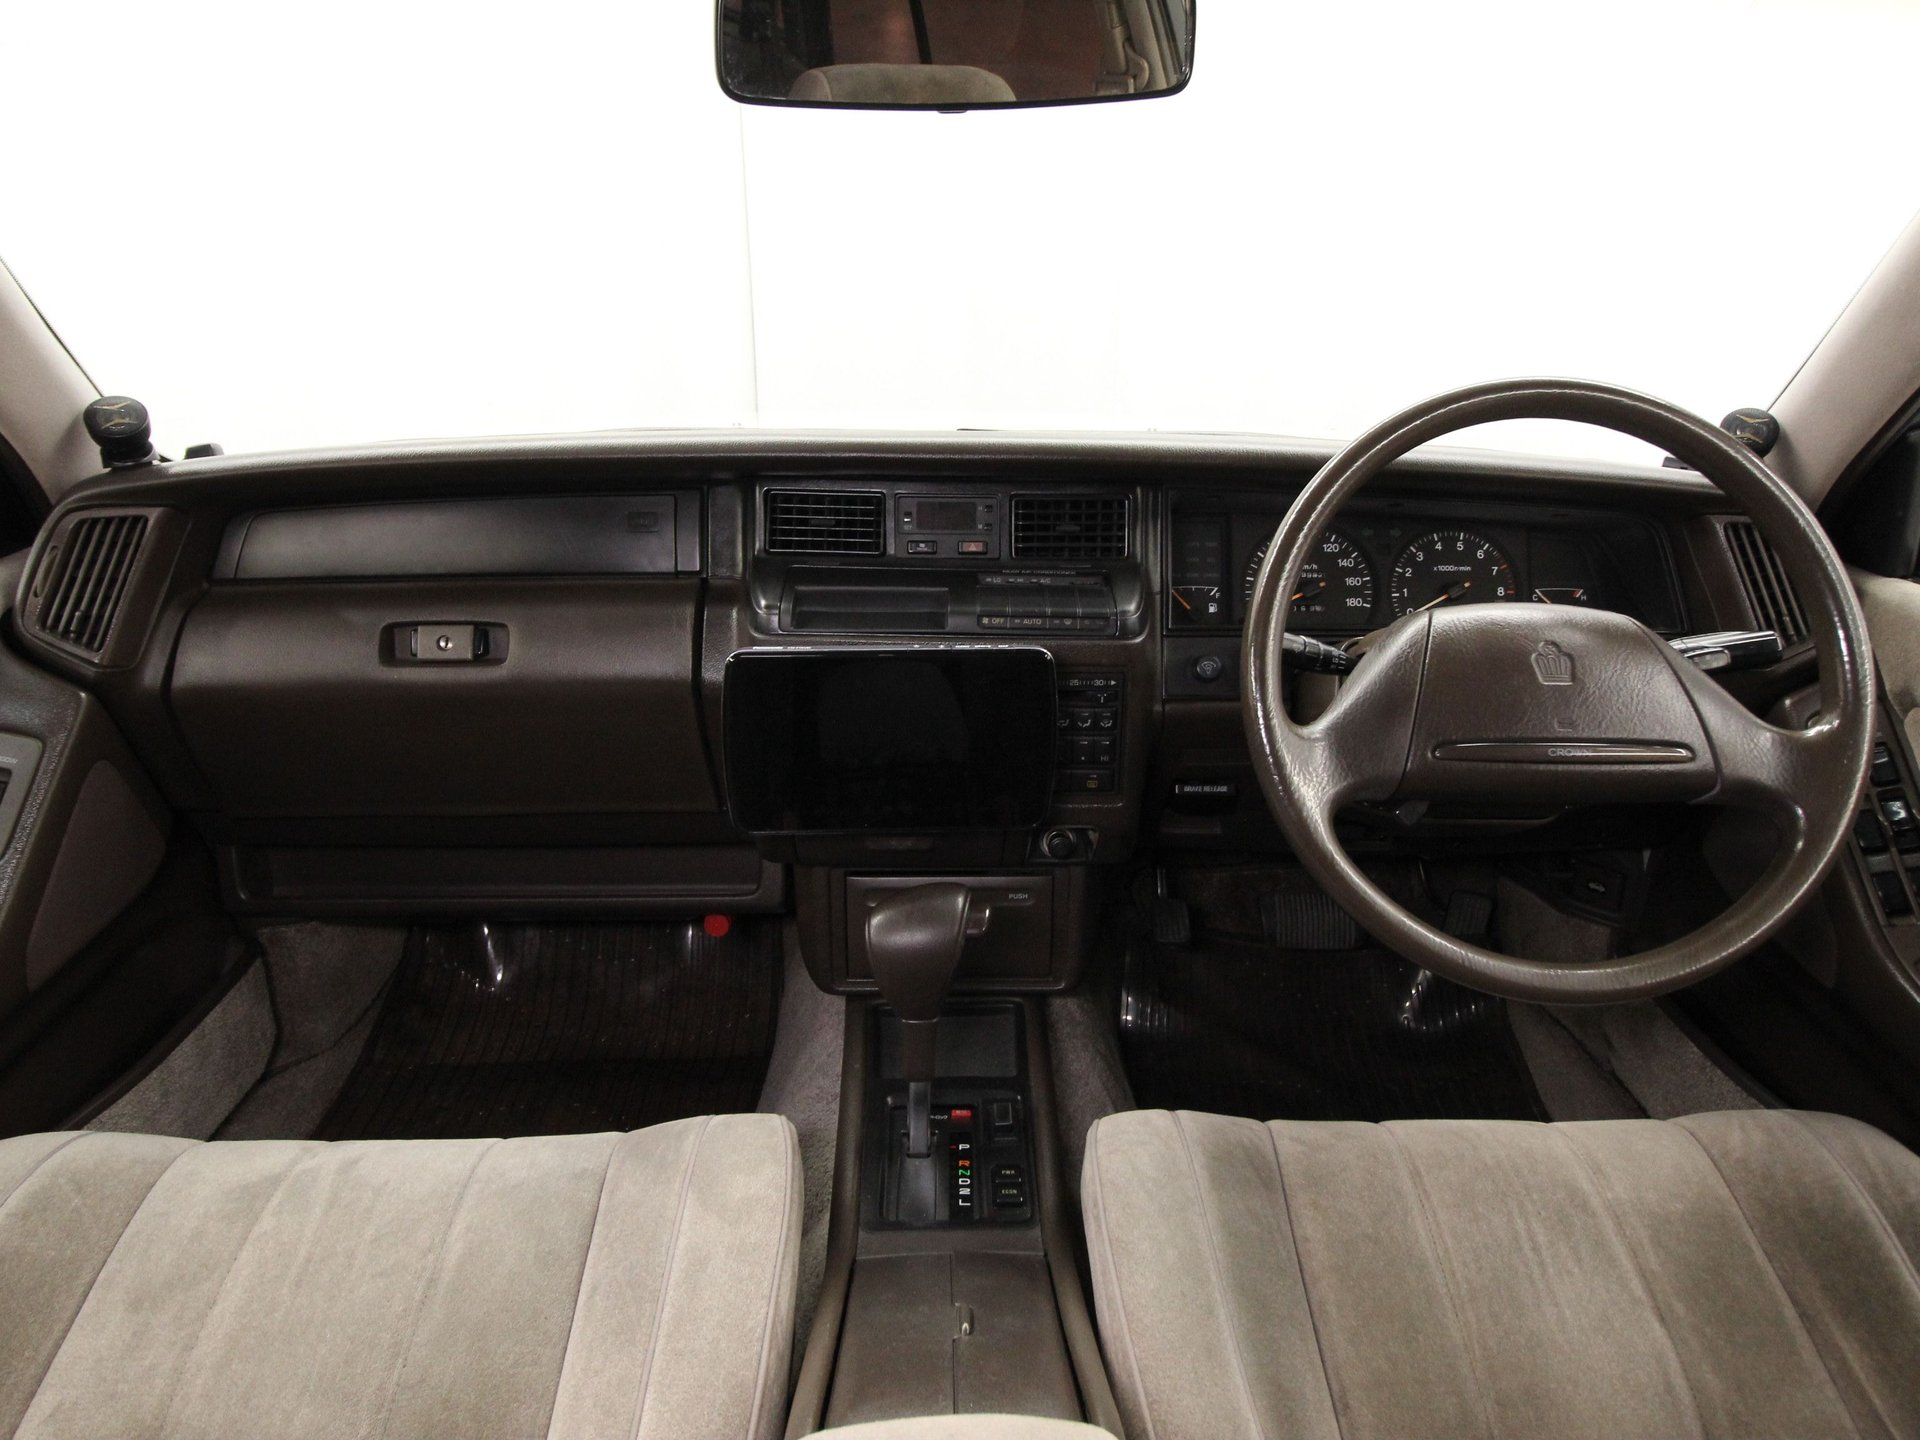 1991 Toyota Crown